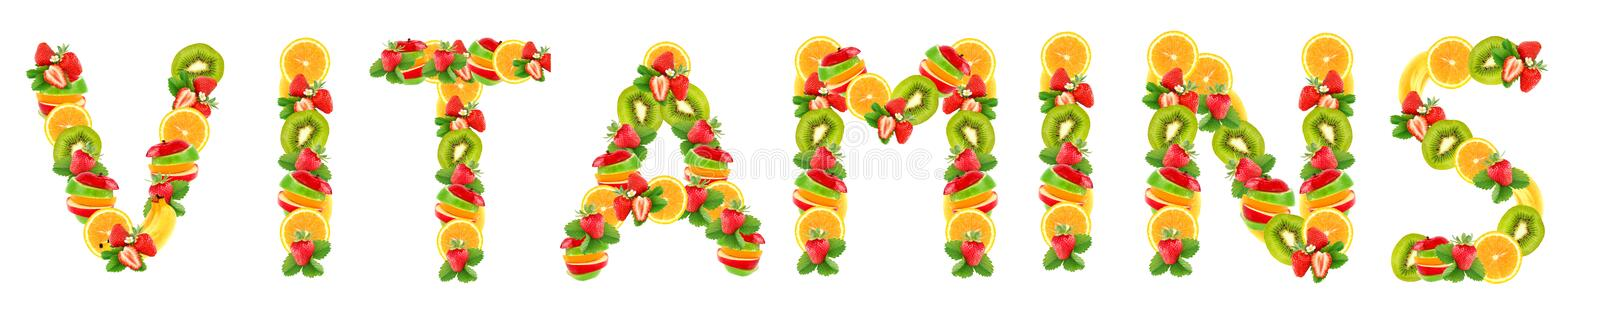 Letters are from fruit royalty free stock photography